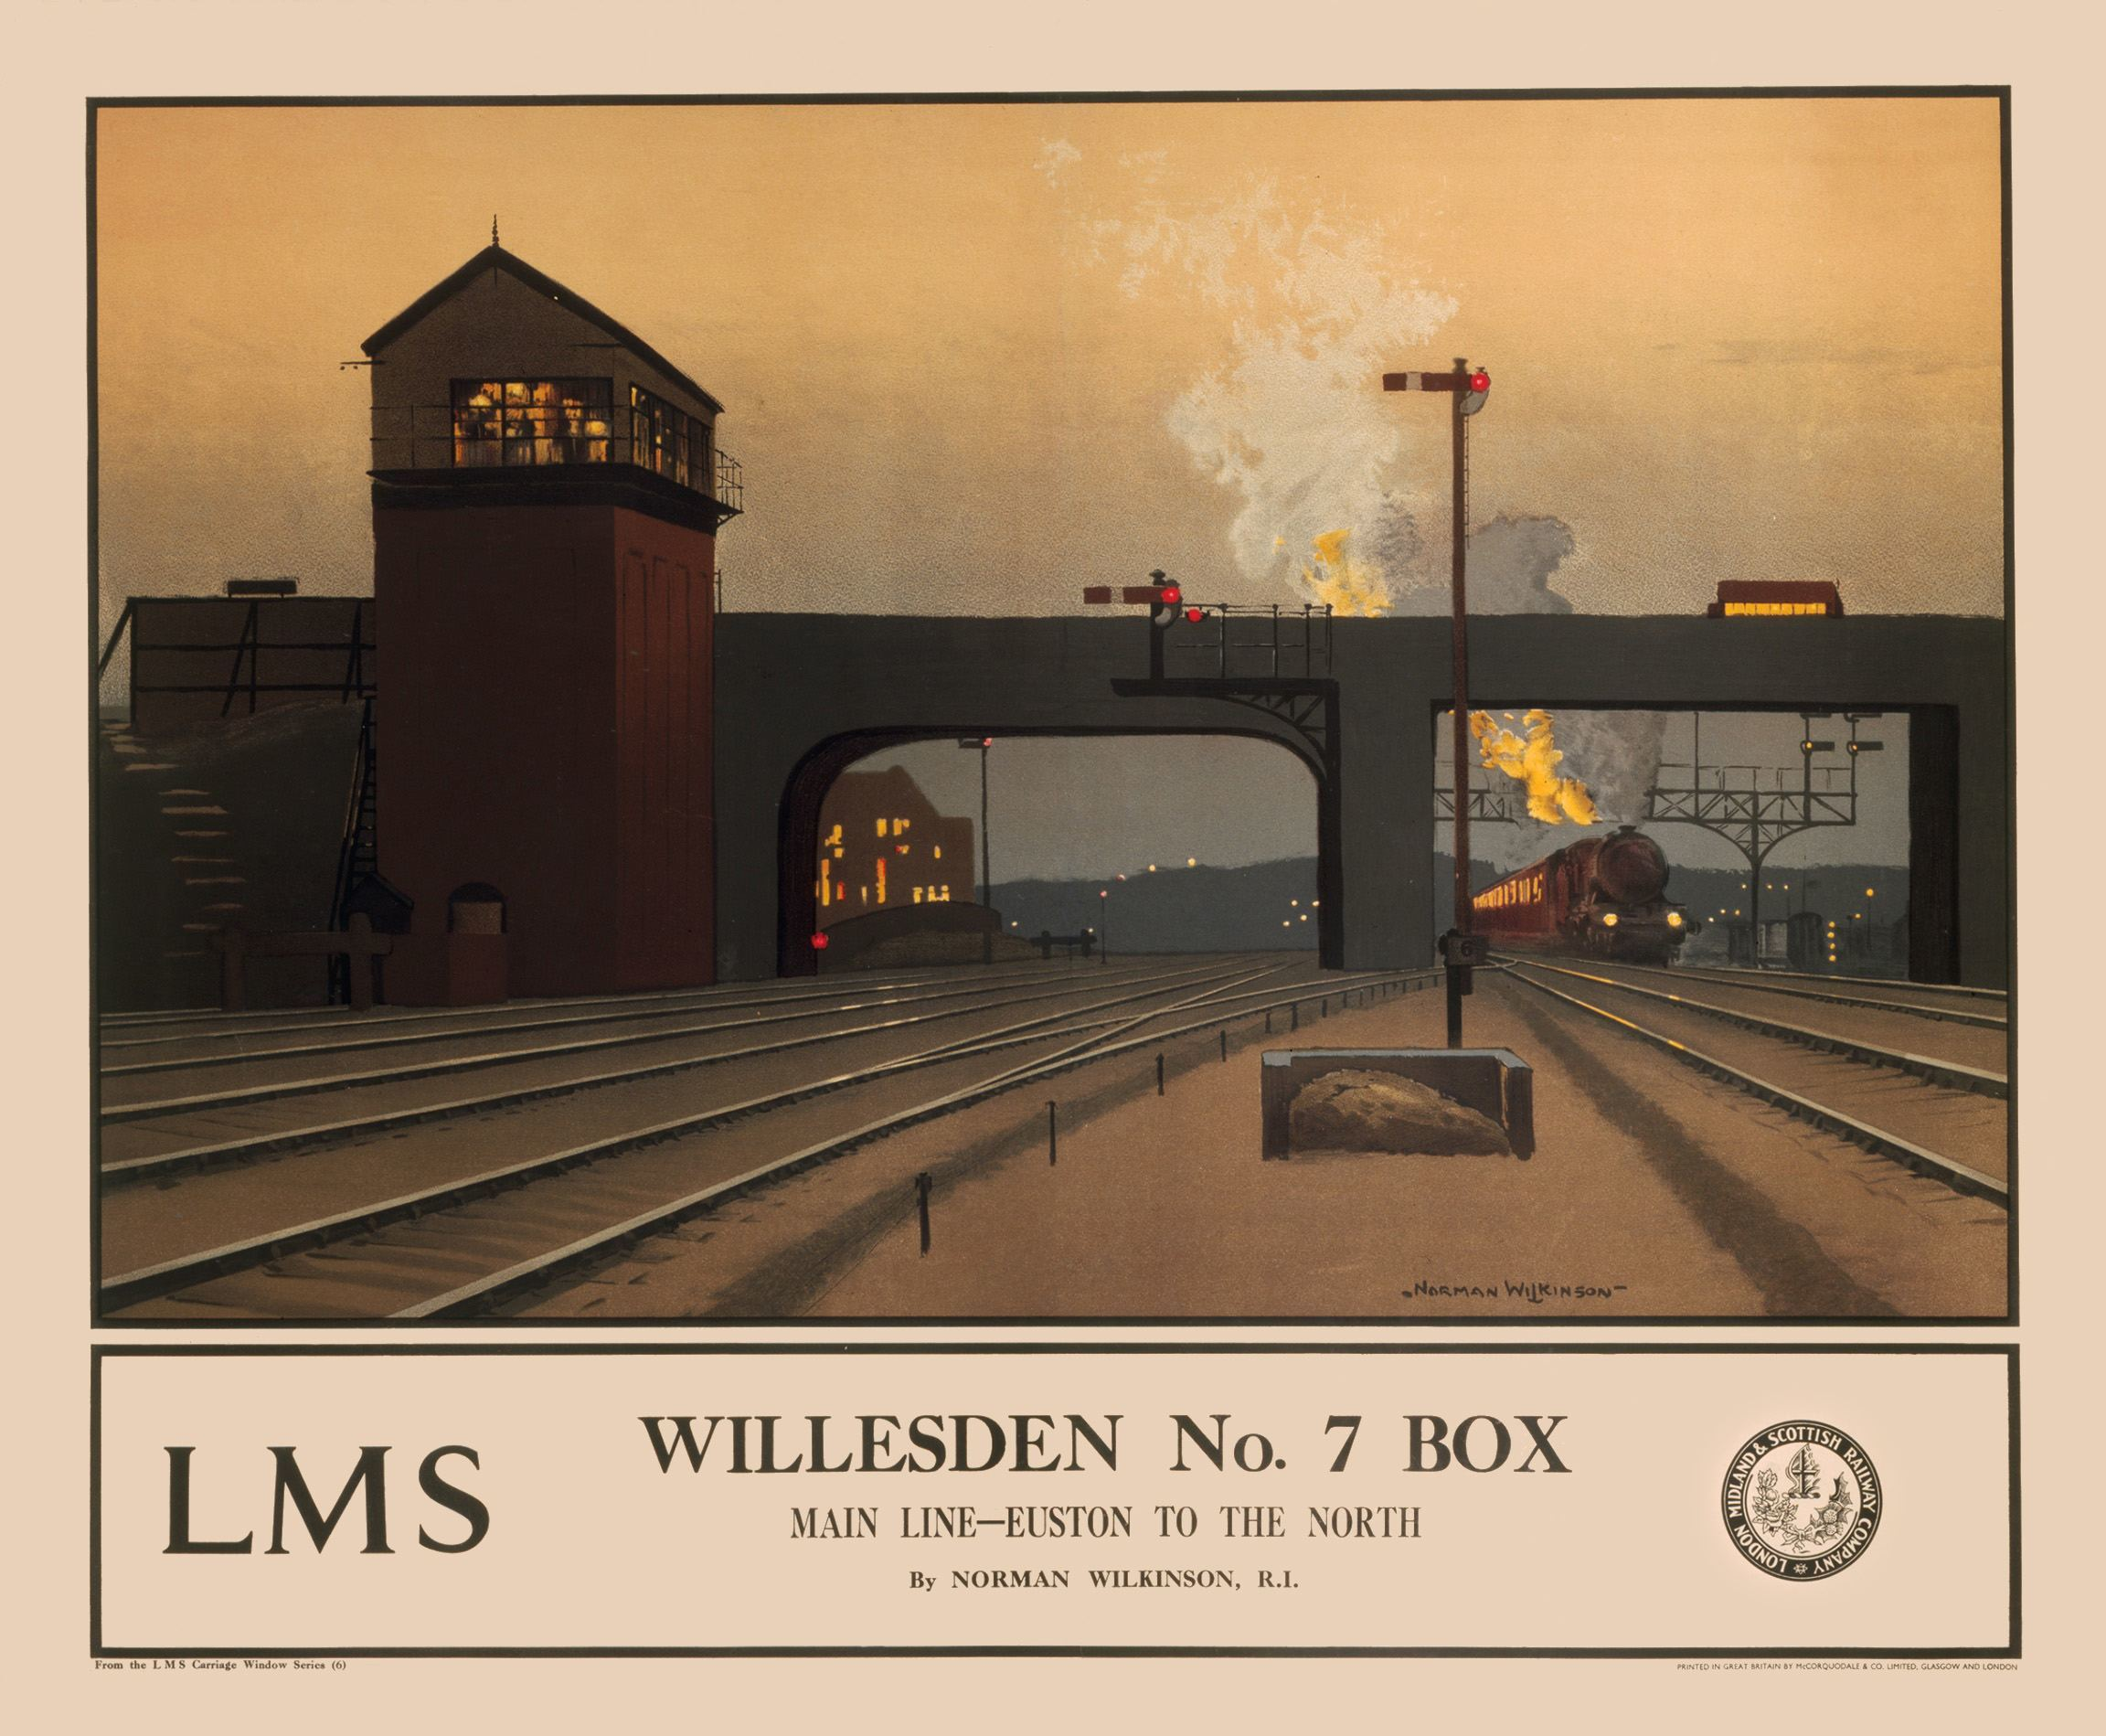 Poster produced for the London Midland & Scottish Railway (LMS). Artwork by Norman Wilkinson.